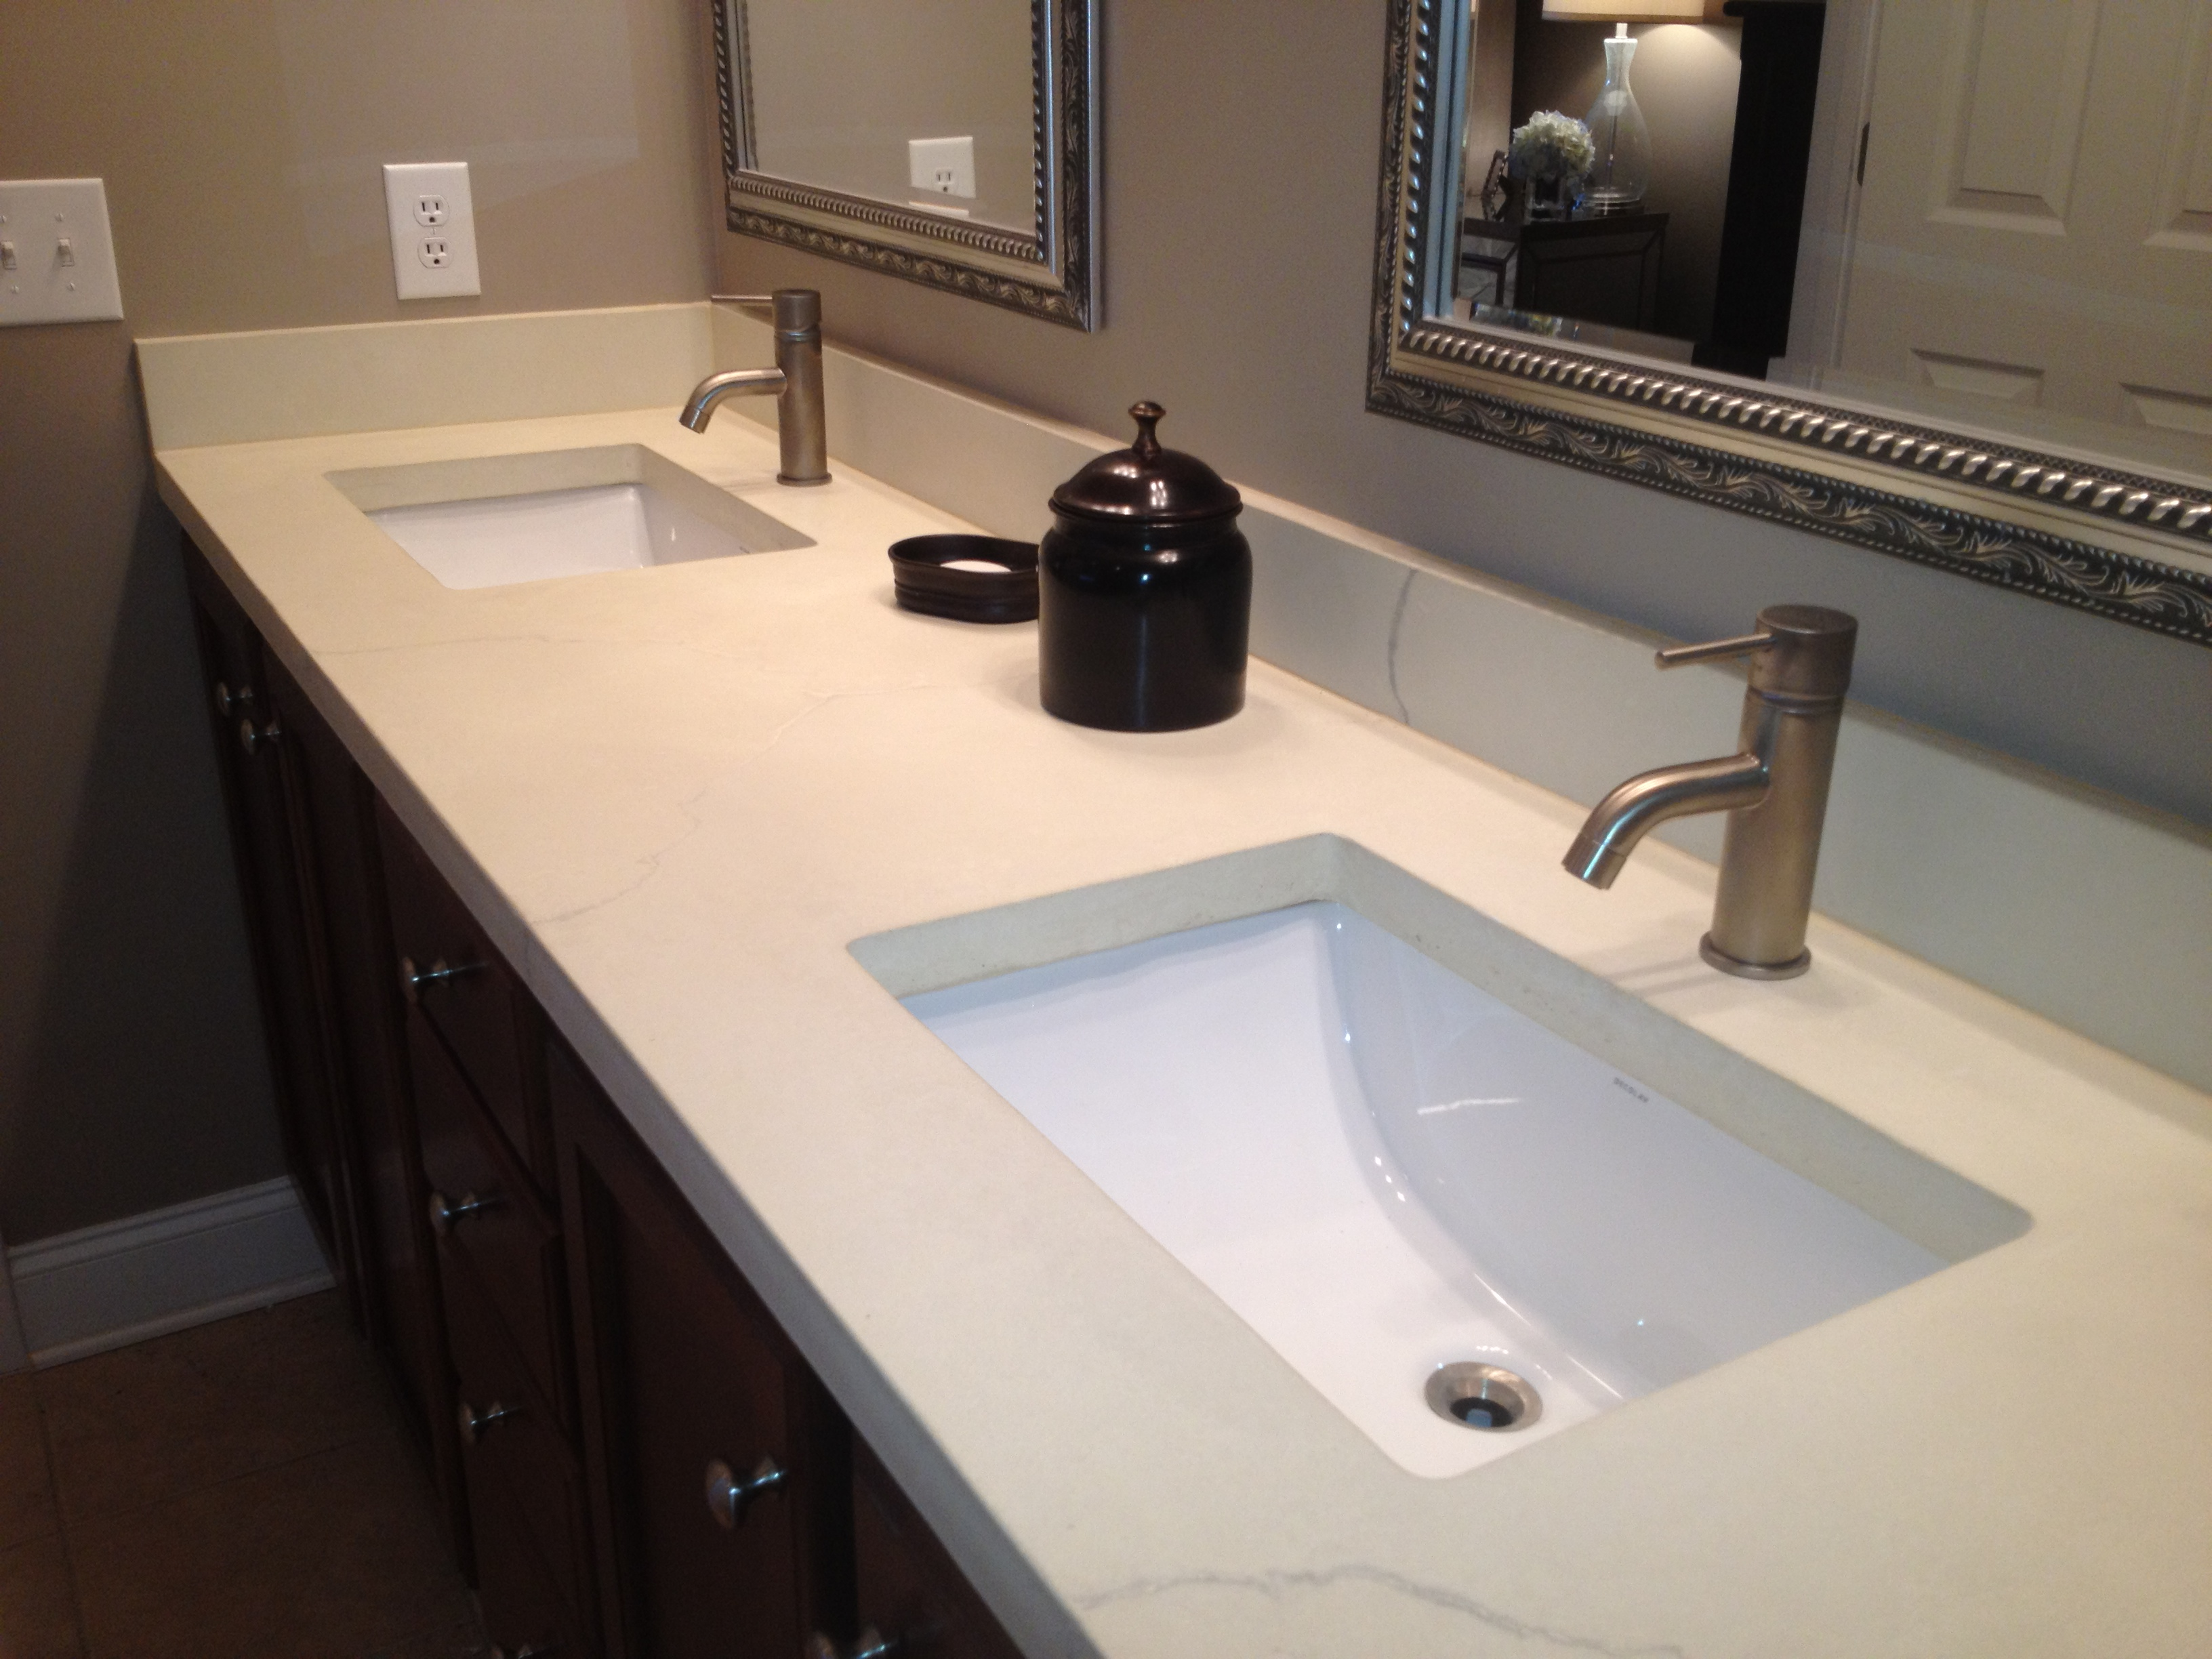 Bathroom Vanity Top Ideas bathroom vanity tops ideas - large and beautiful photos. photo to